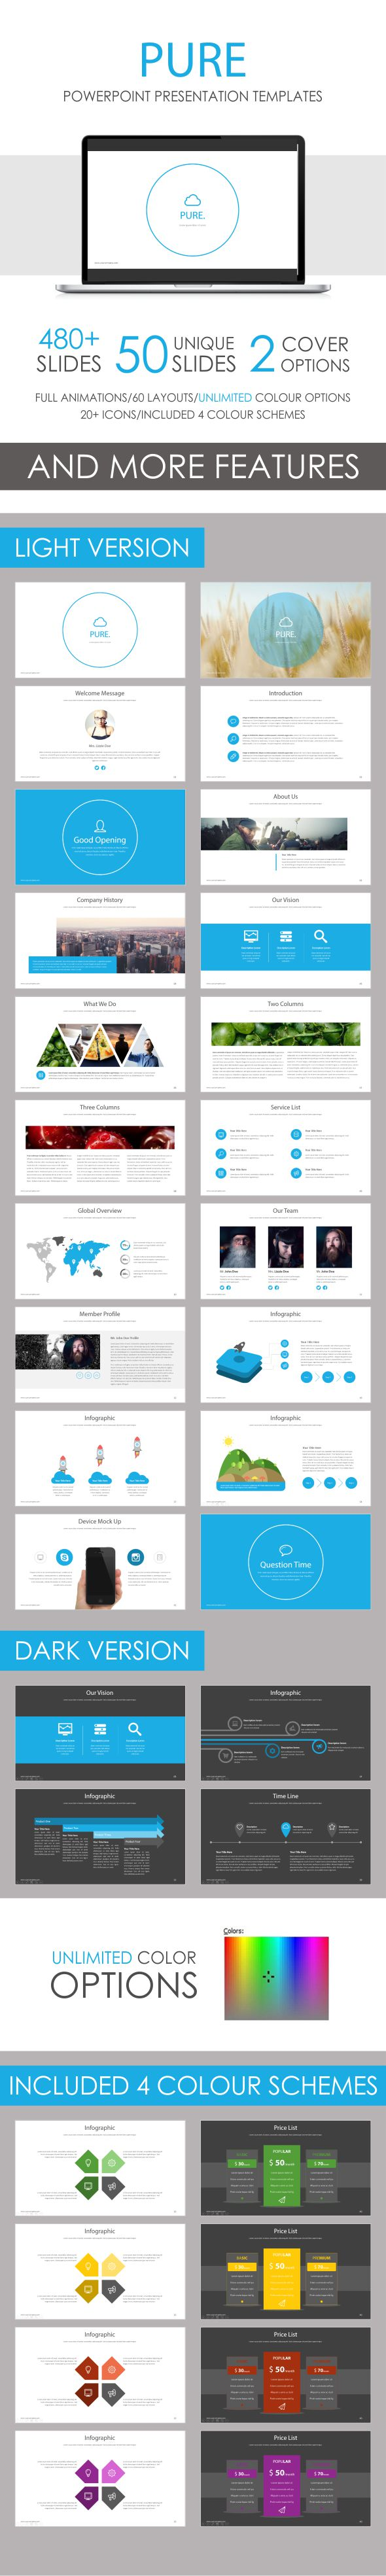 Pure PowerPoint Template - Business PowerPoint Templates